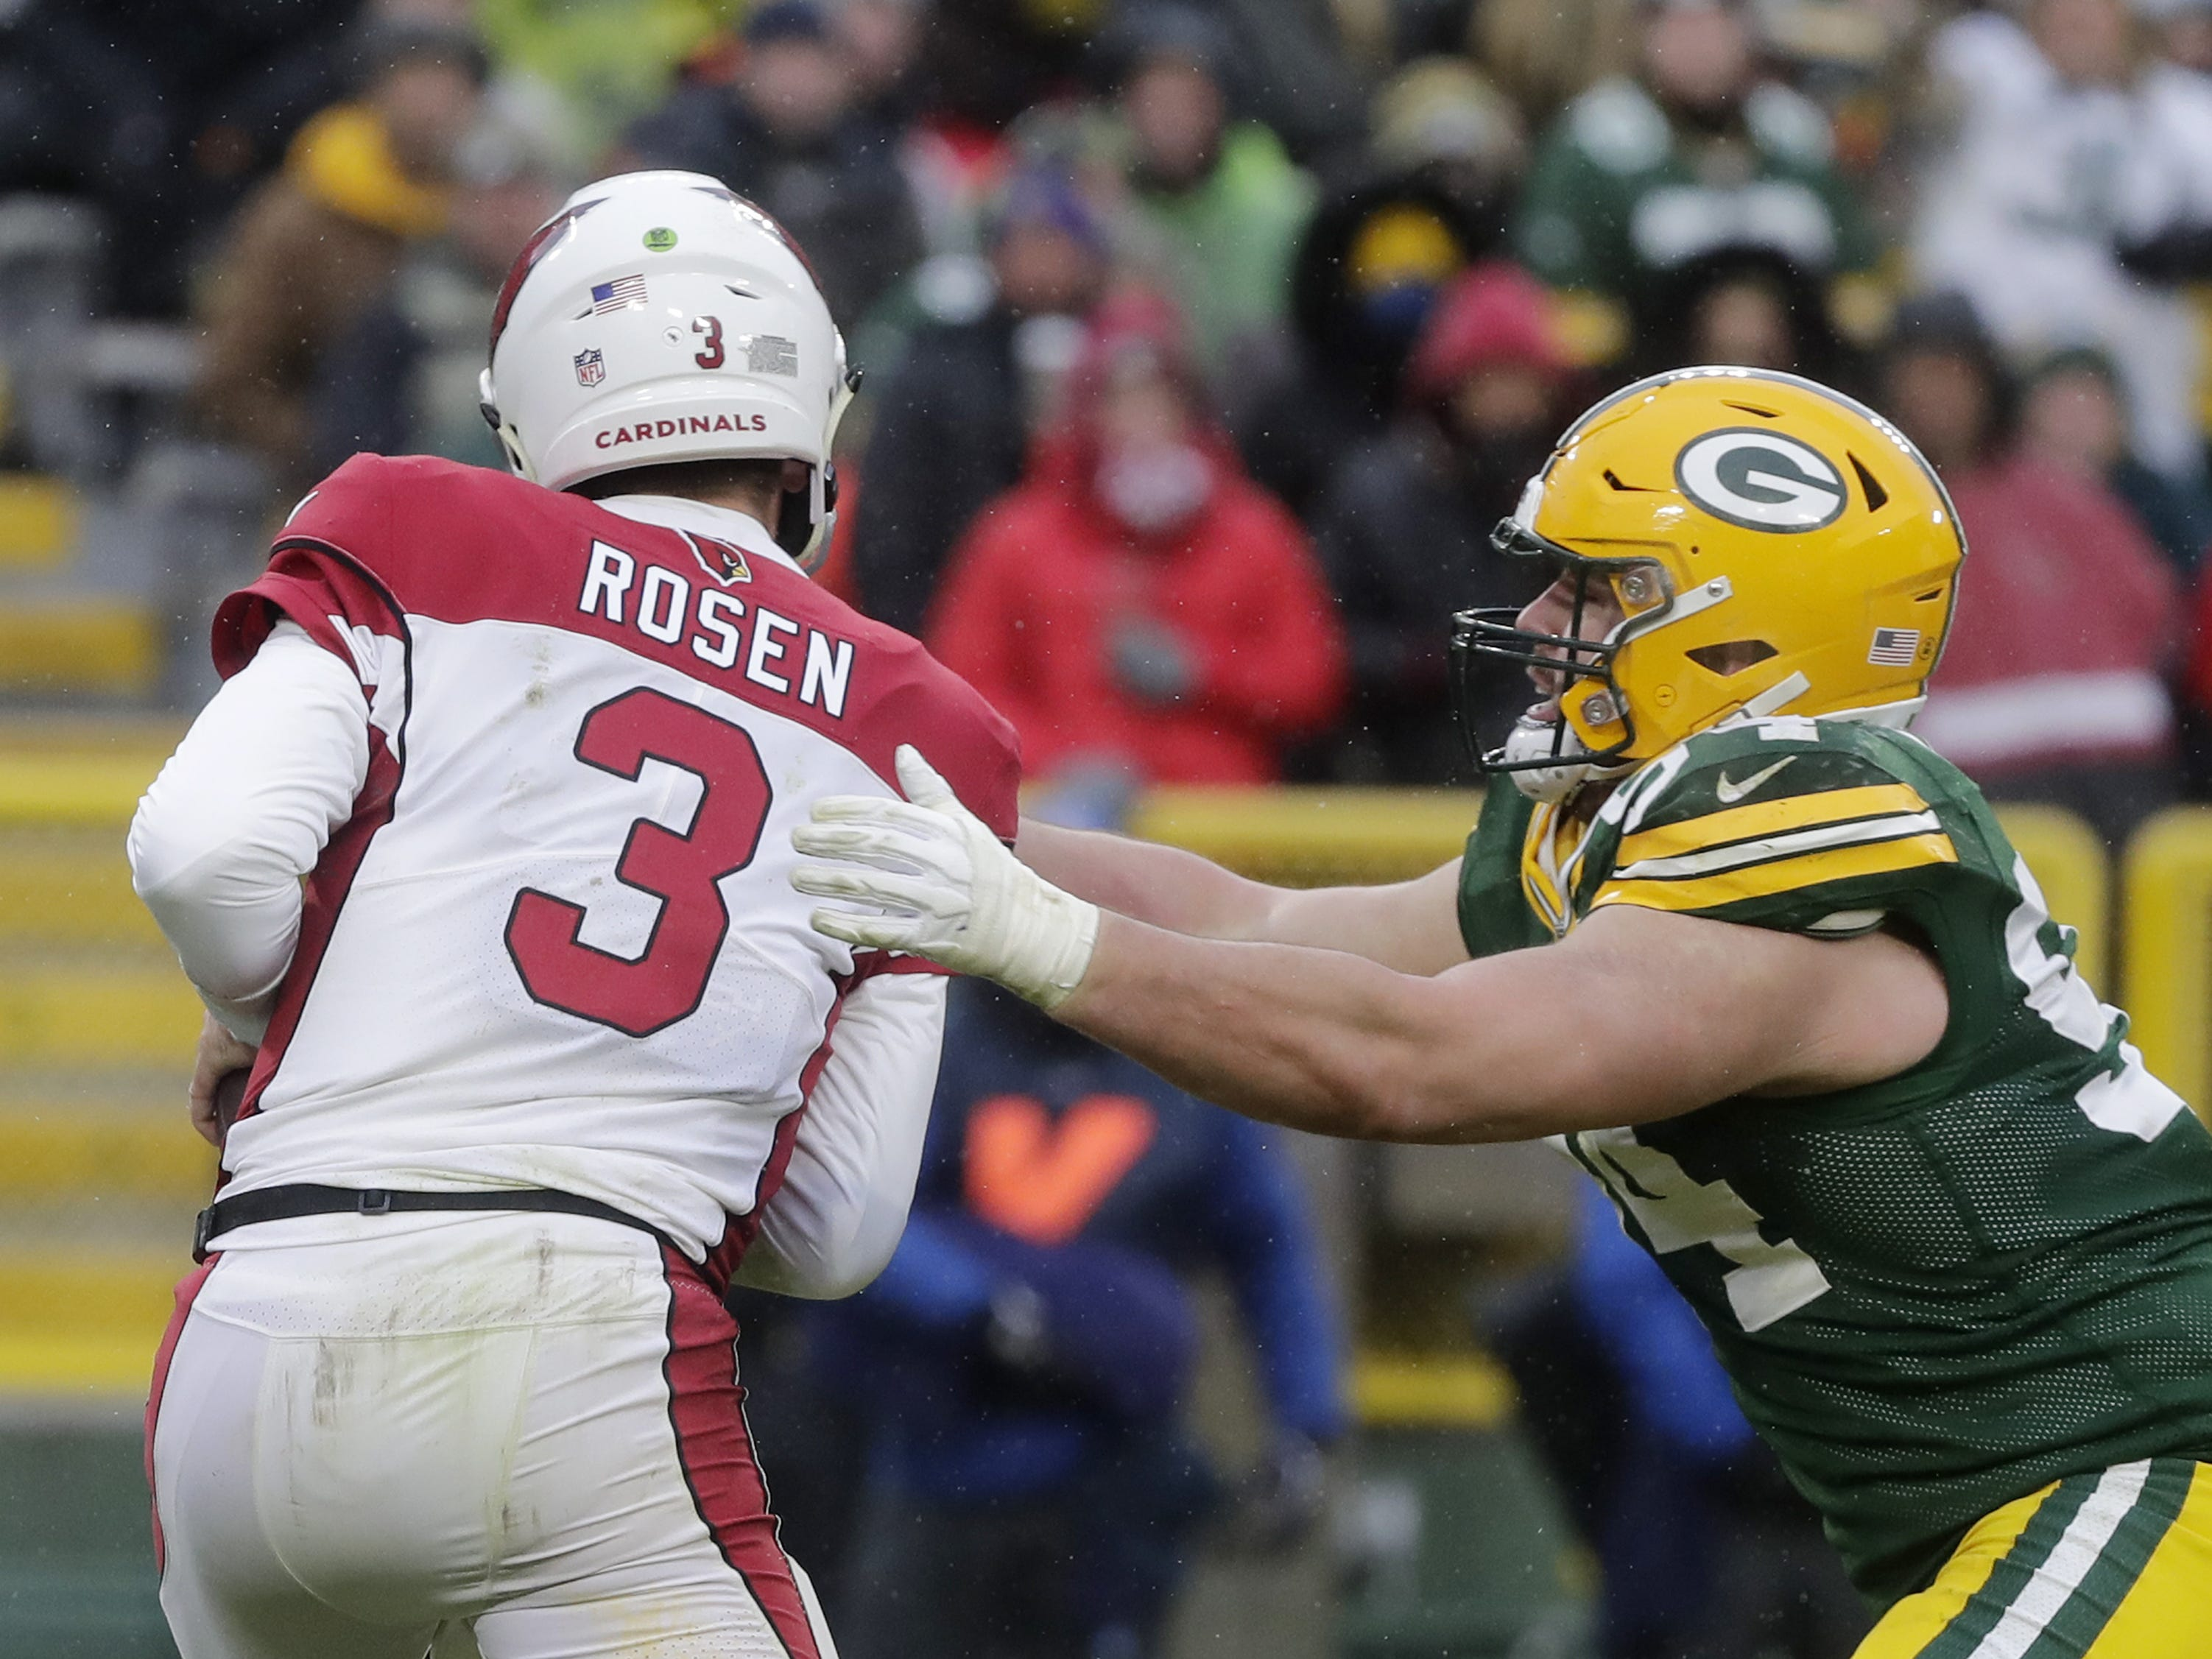 Green Bay Packers defensive end Dean Lowry (94) sacks Arizona Cardinals quarterback Josh Rosen (3) in the fourth quarter at Lambeau Field on Sunday, December 2, 2018 in Green Bay, Wis.